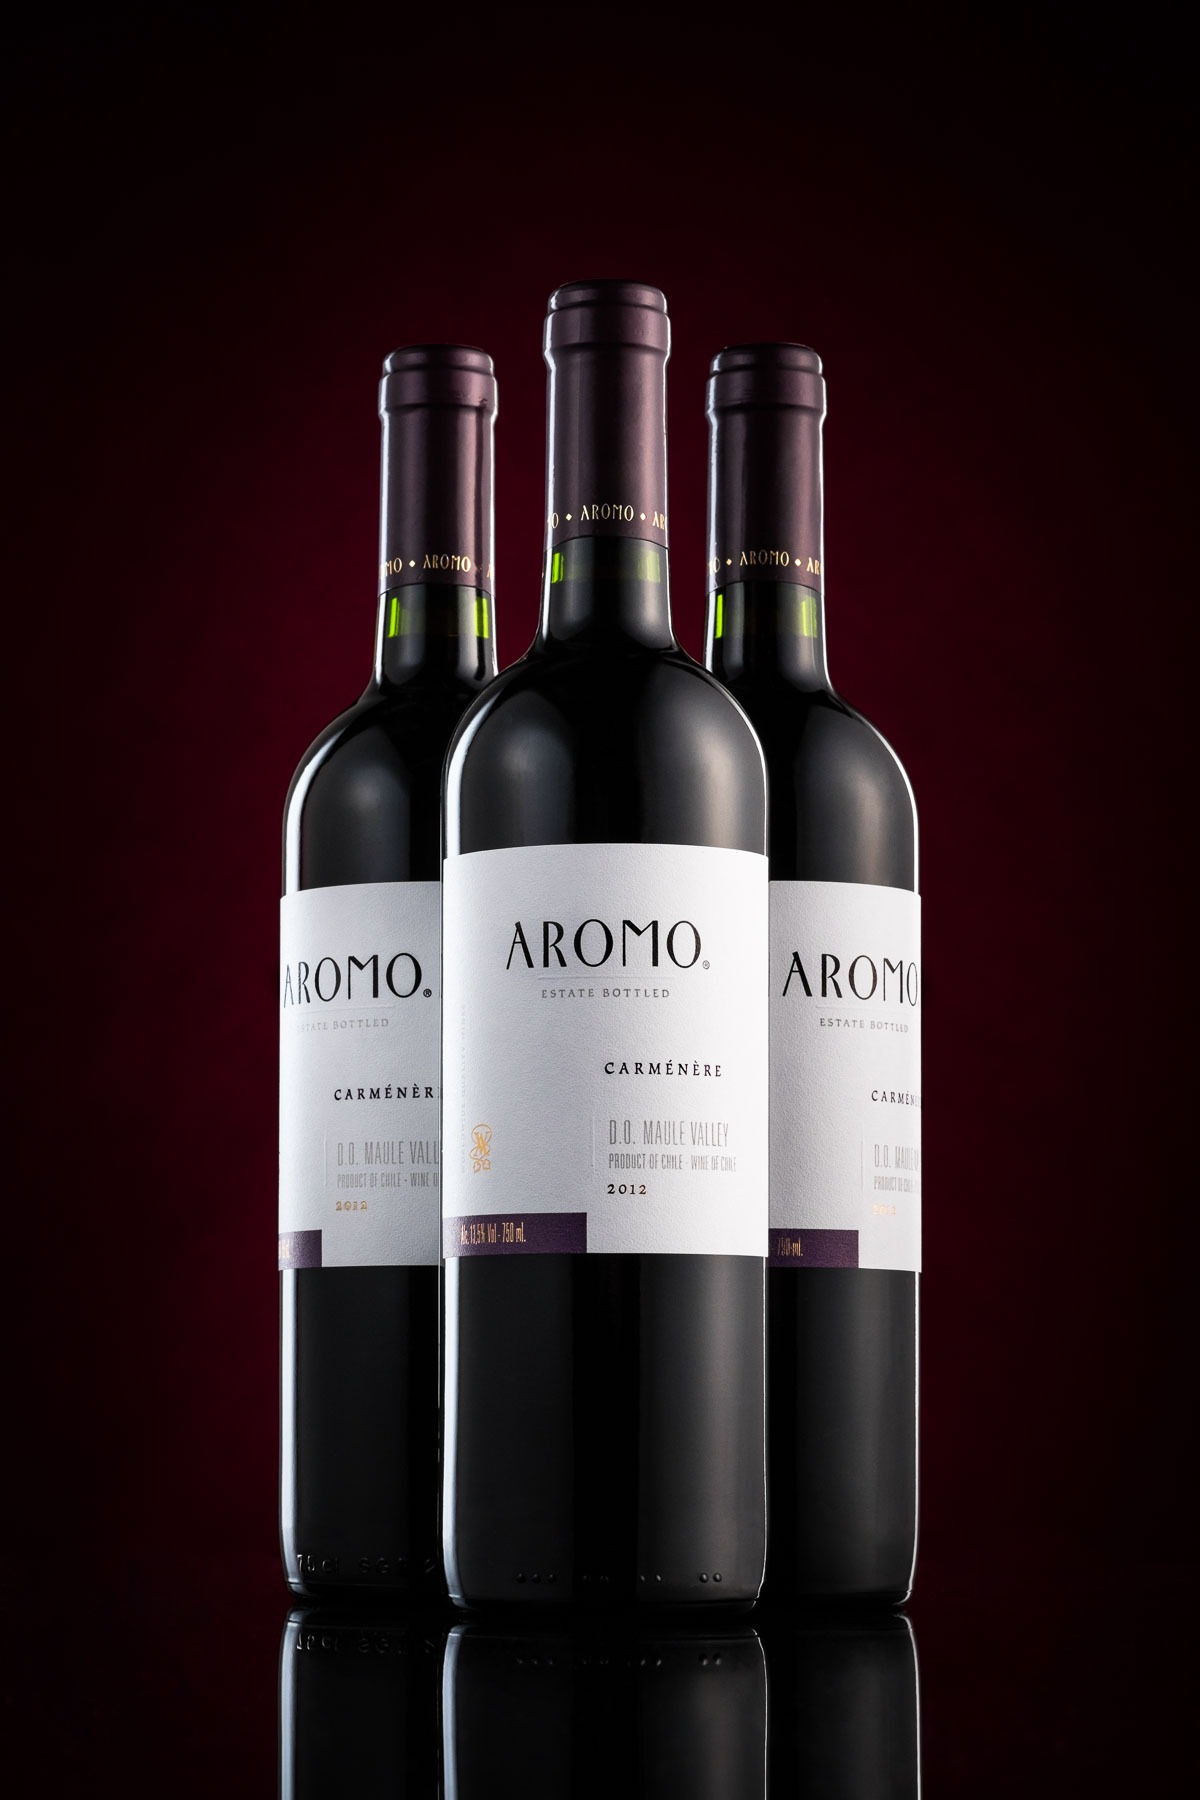 Aromo red wine bottles